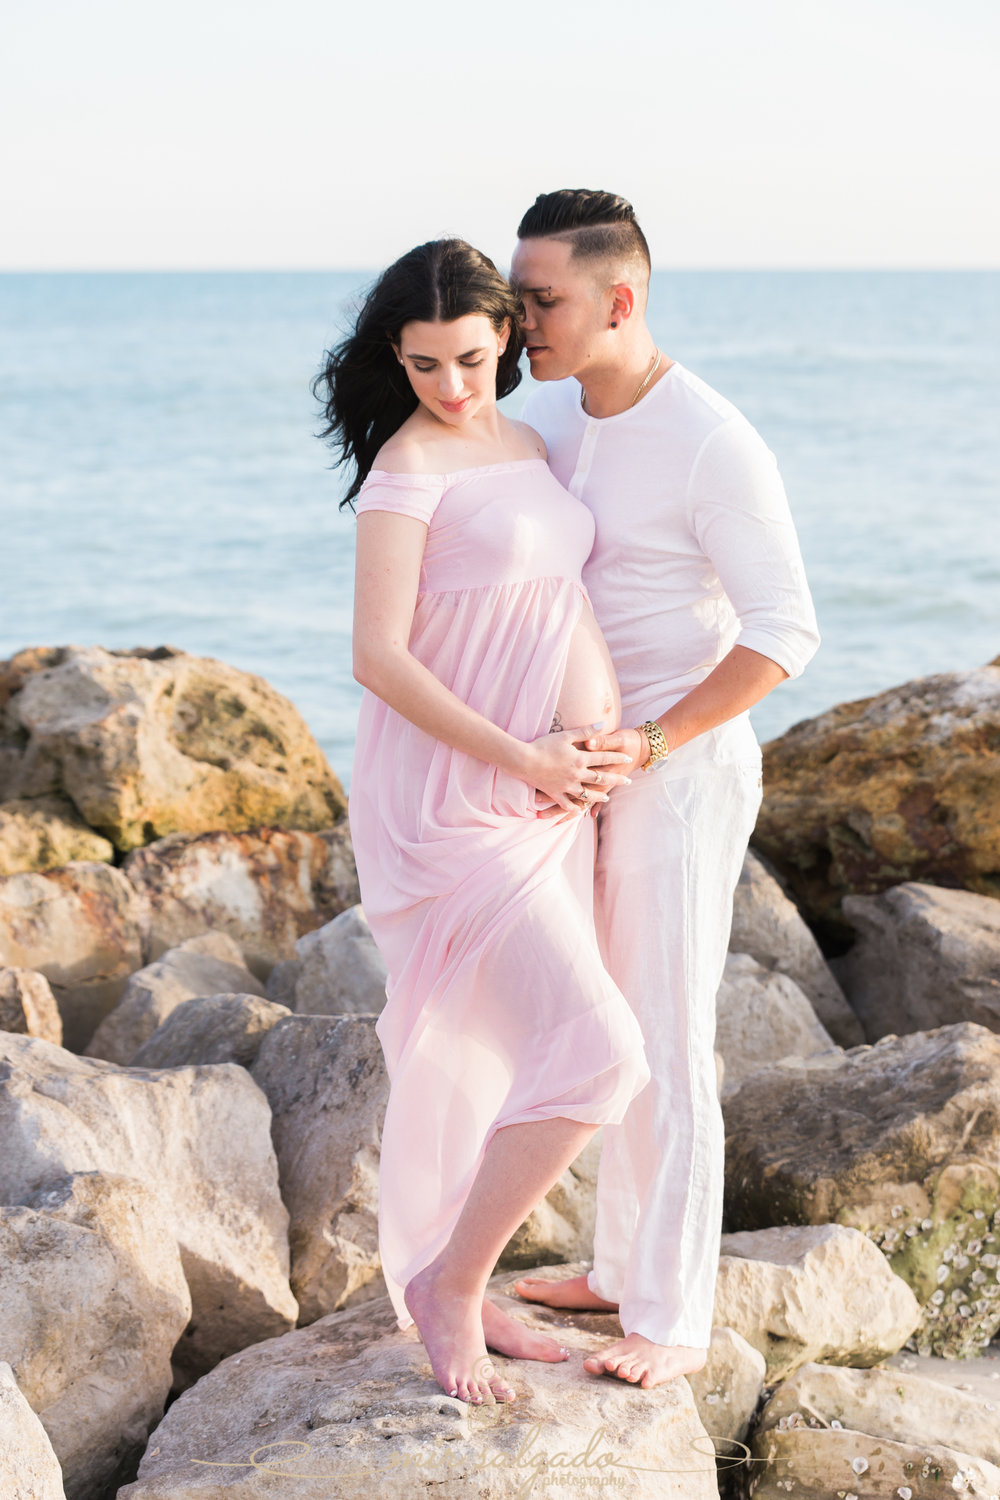 Florida-beach-maternity-session, Tampa-maternity-photographer